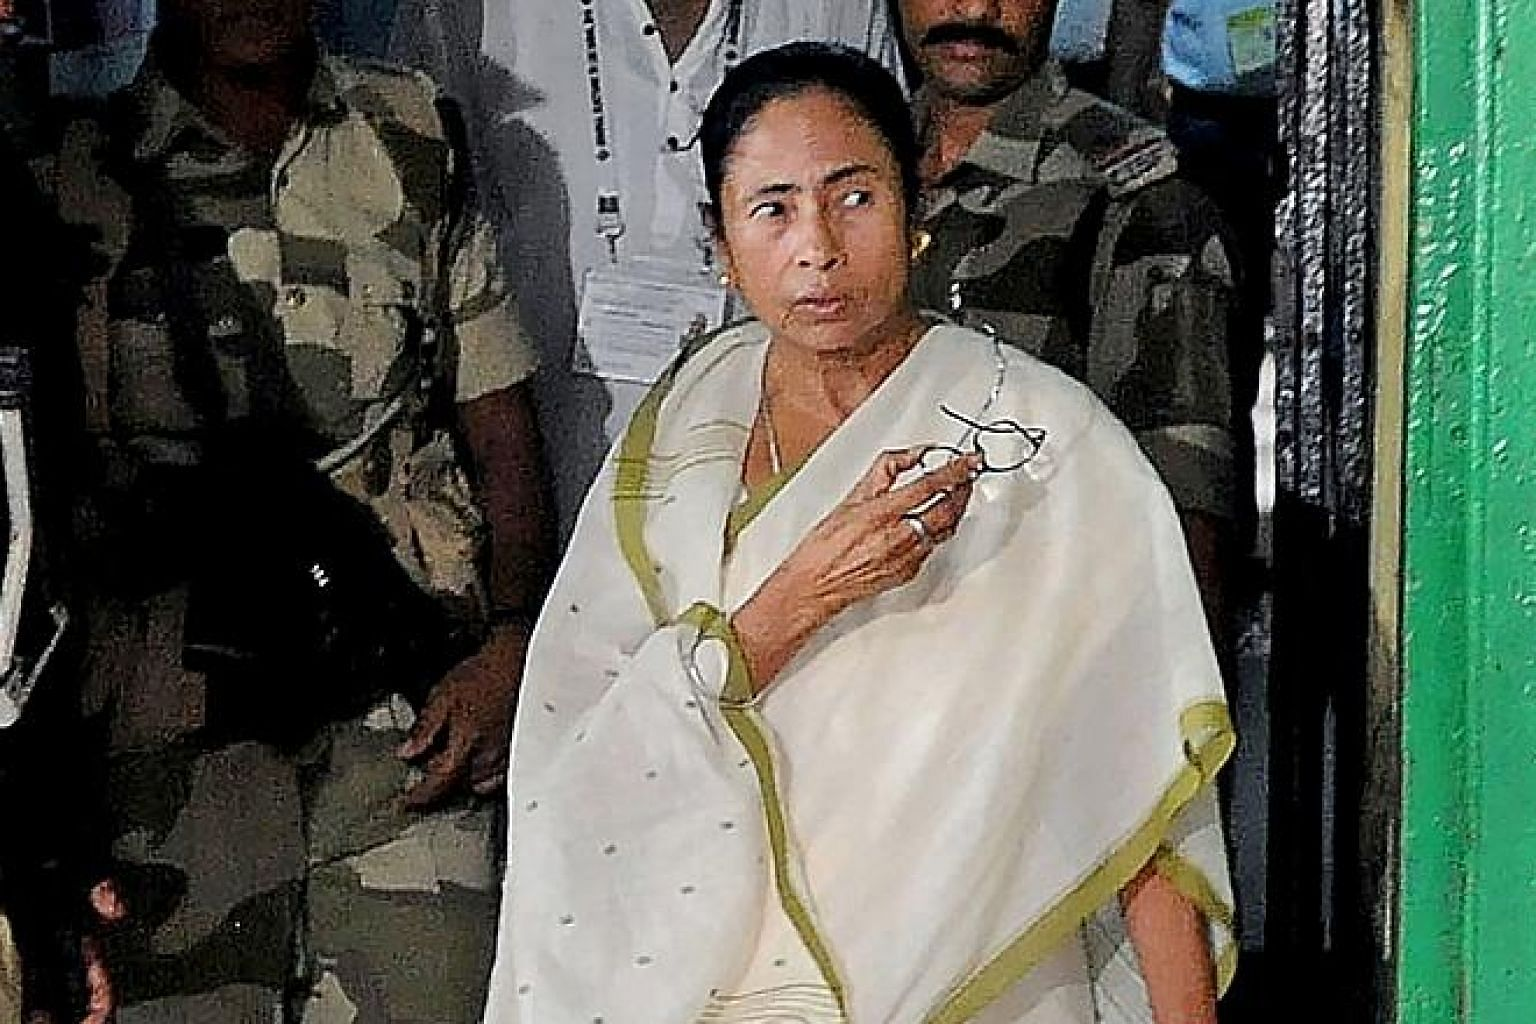 Chief Minister Mamata Banerjee's Trinamool Congress is pitted against the BJP in the state.